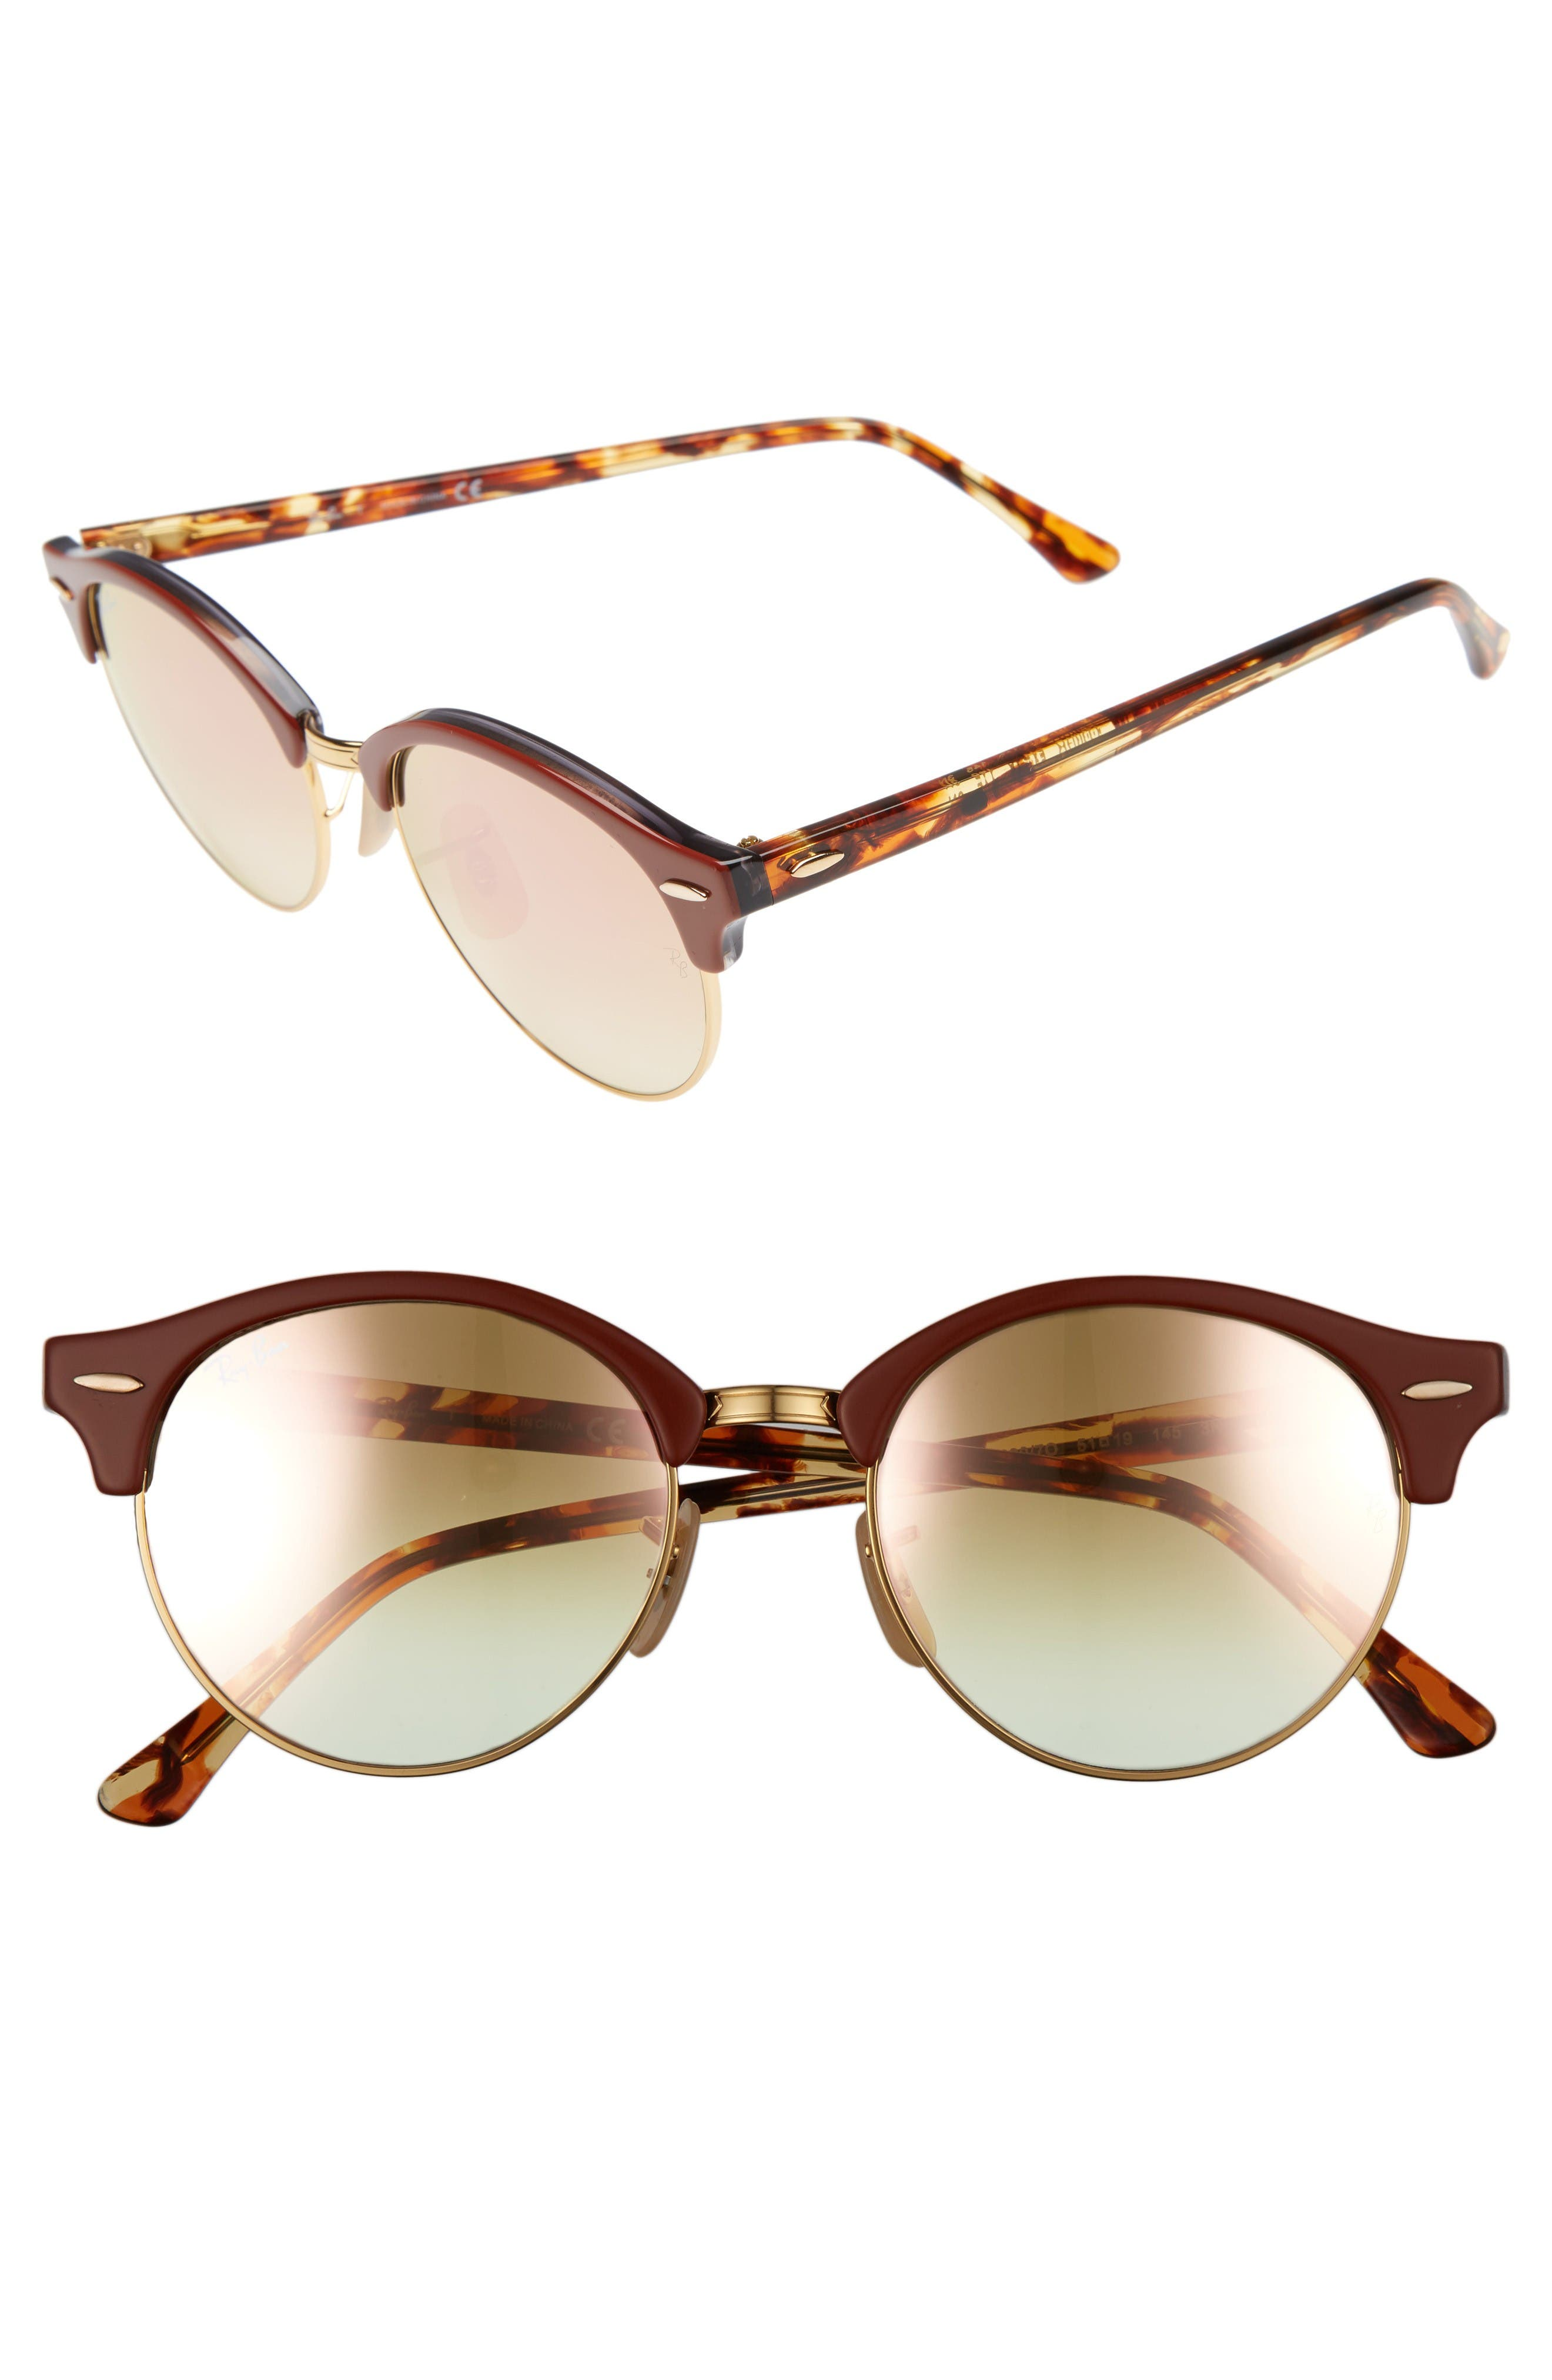 Clubround 51mm Round Sunglasses,                             Main thumbnail 1, color,                             Gold